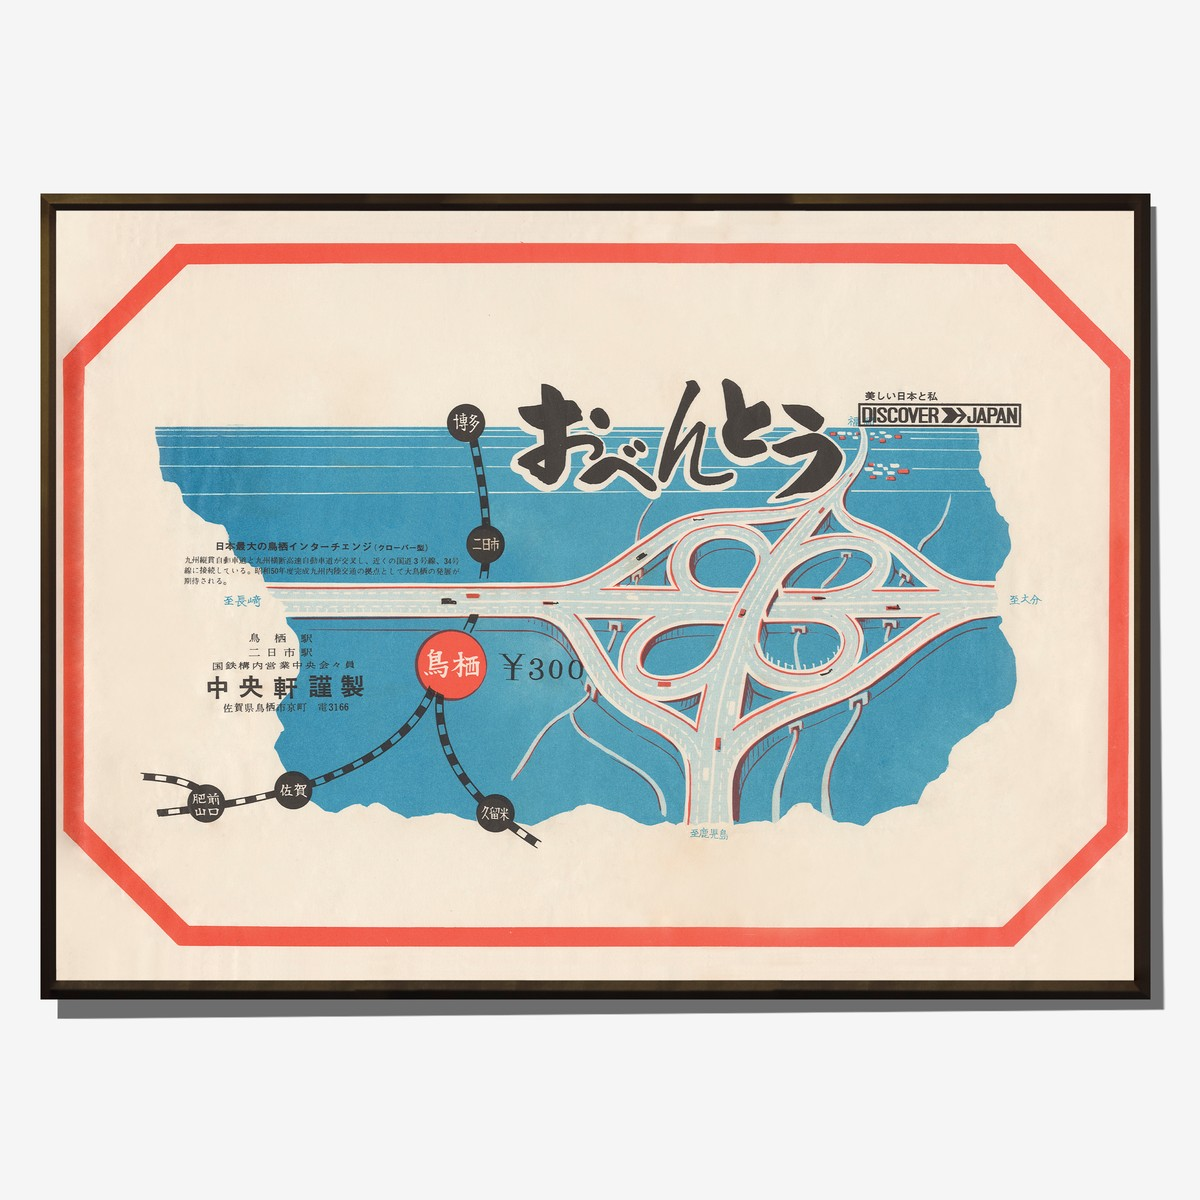 Photo of Kyushu Expressway Vintage Advertising Poster